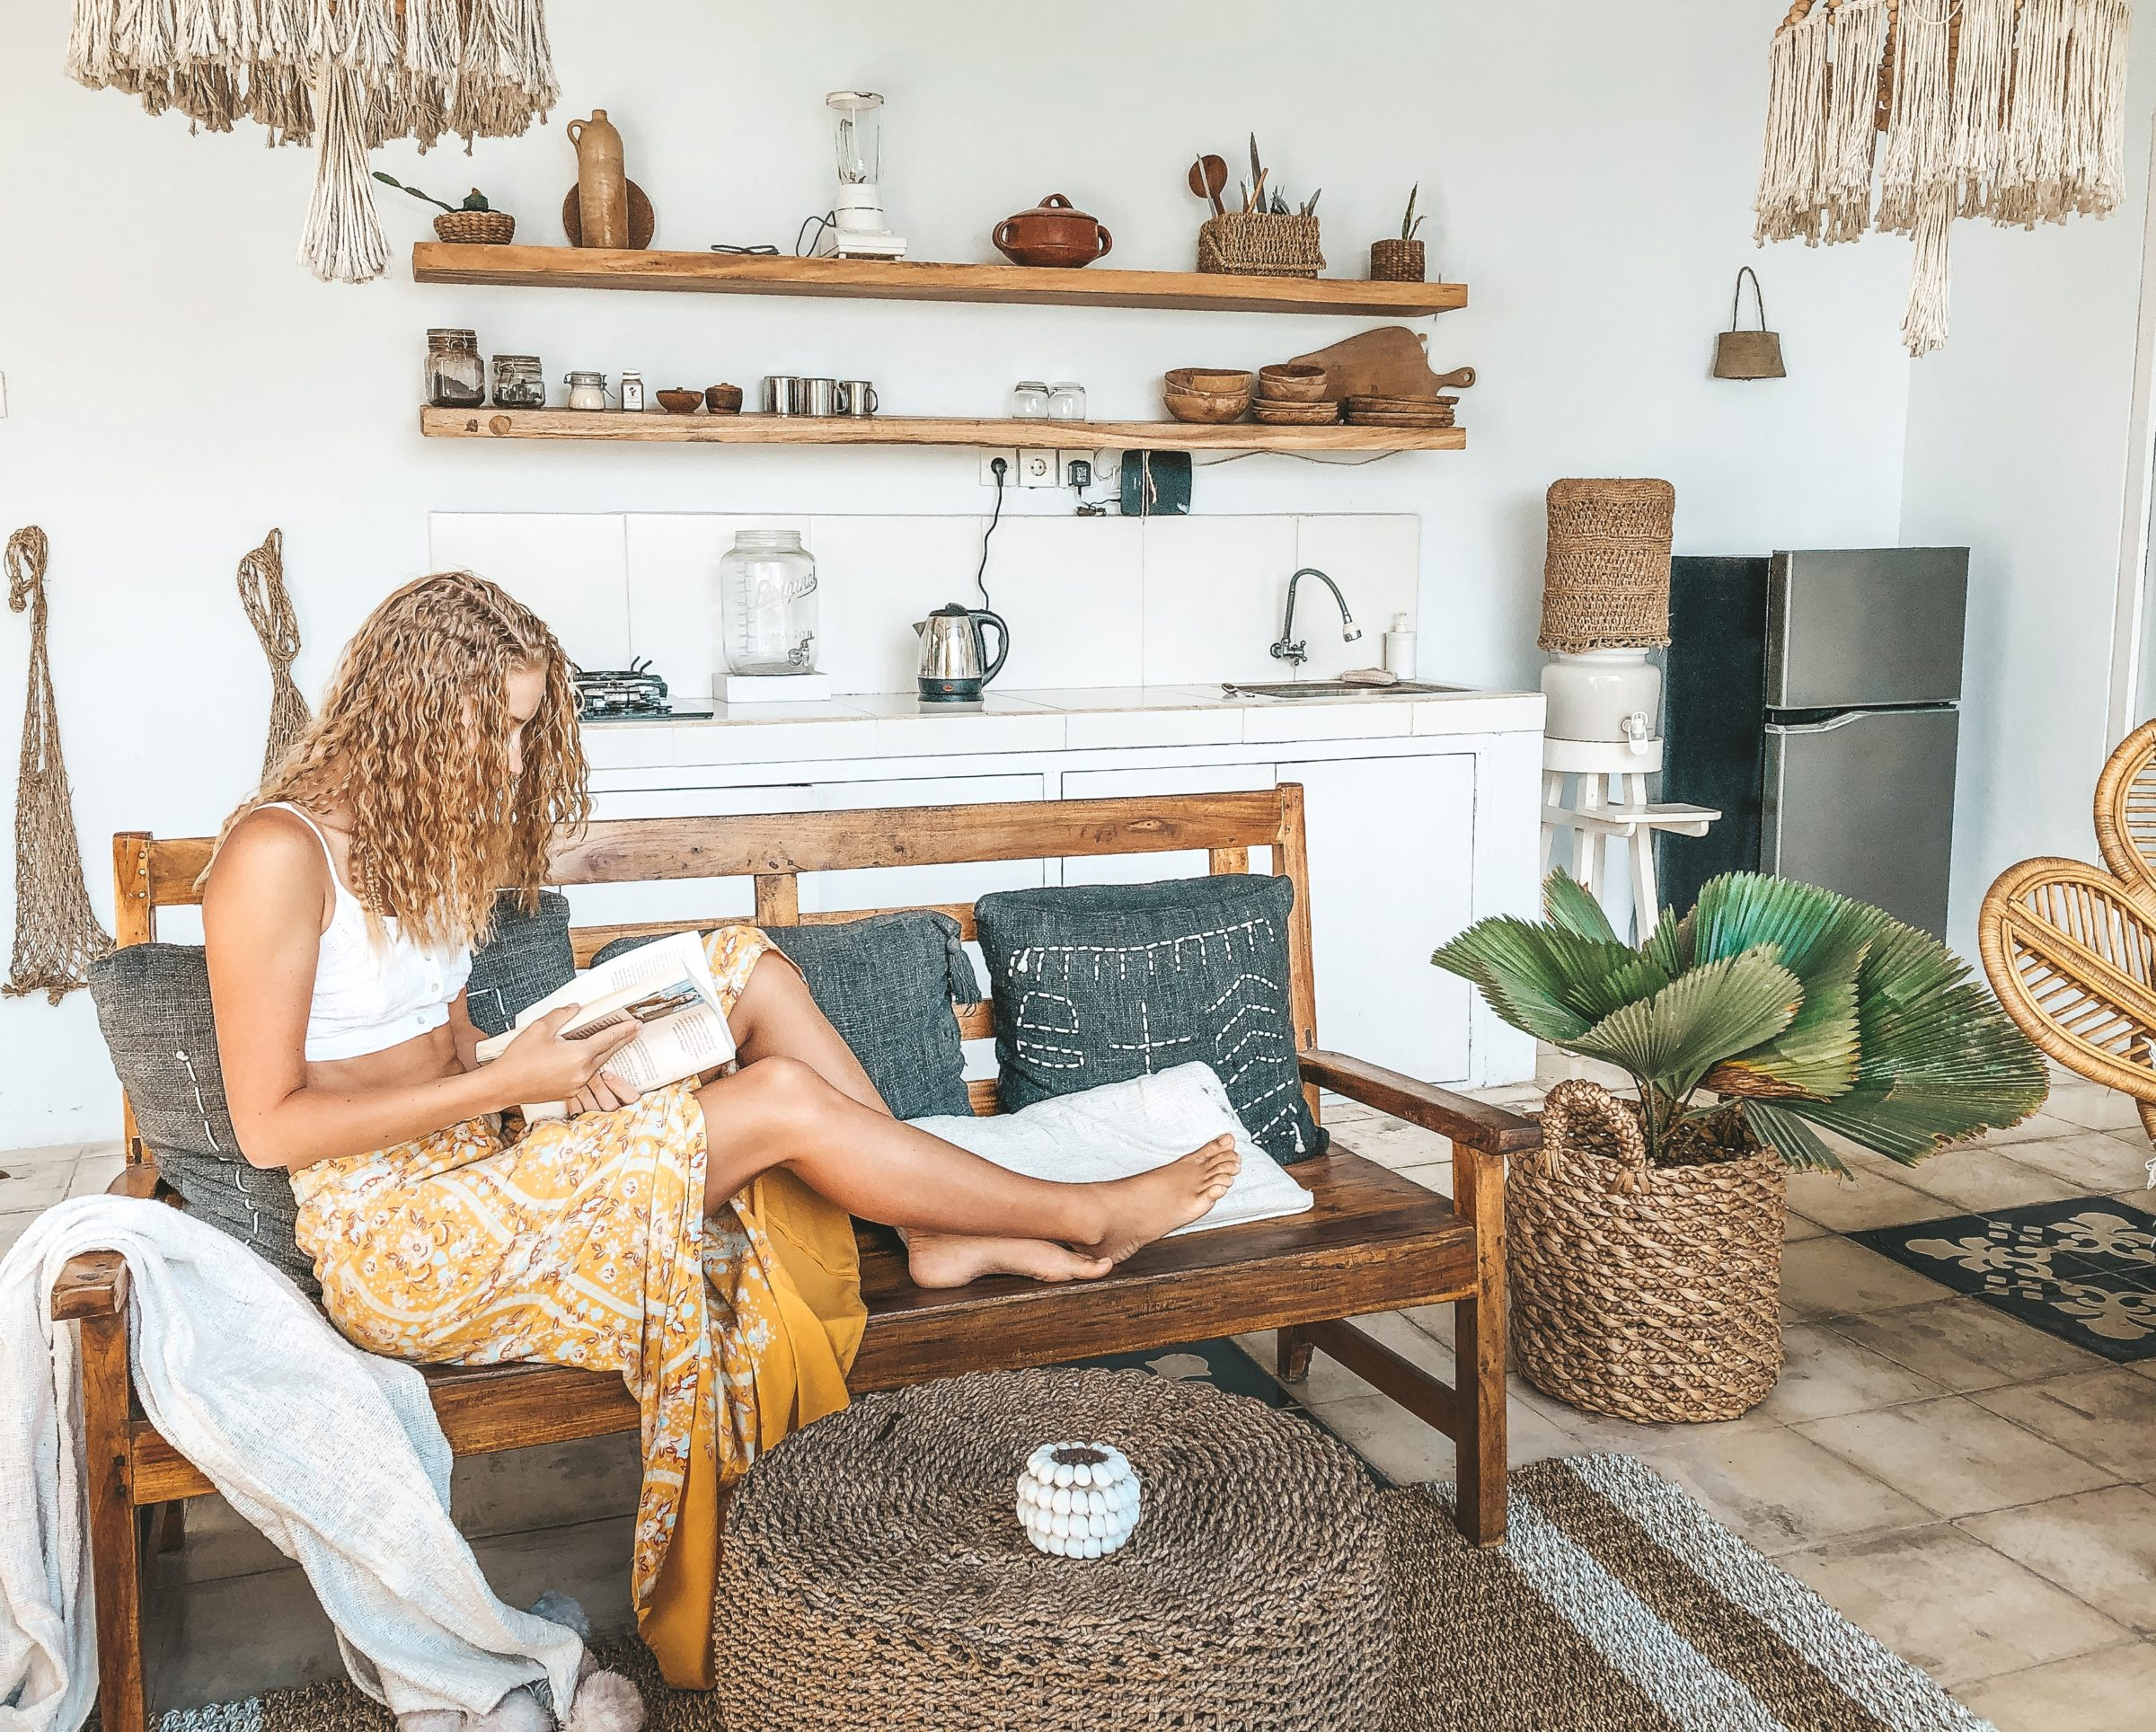 bohemian dressed woman relaxing in the living room BUUFFSU